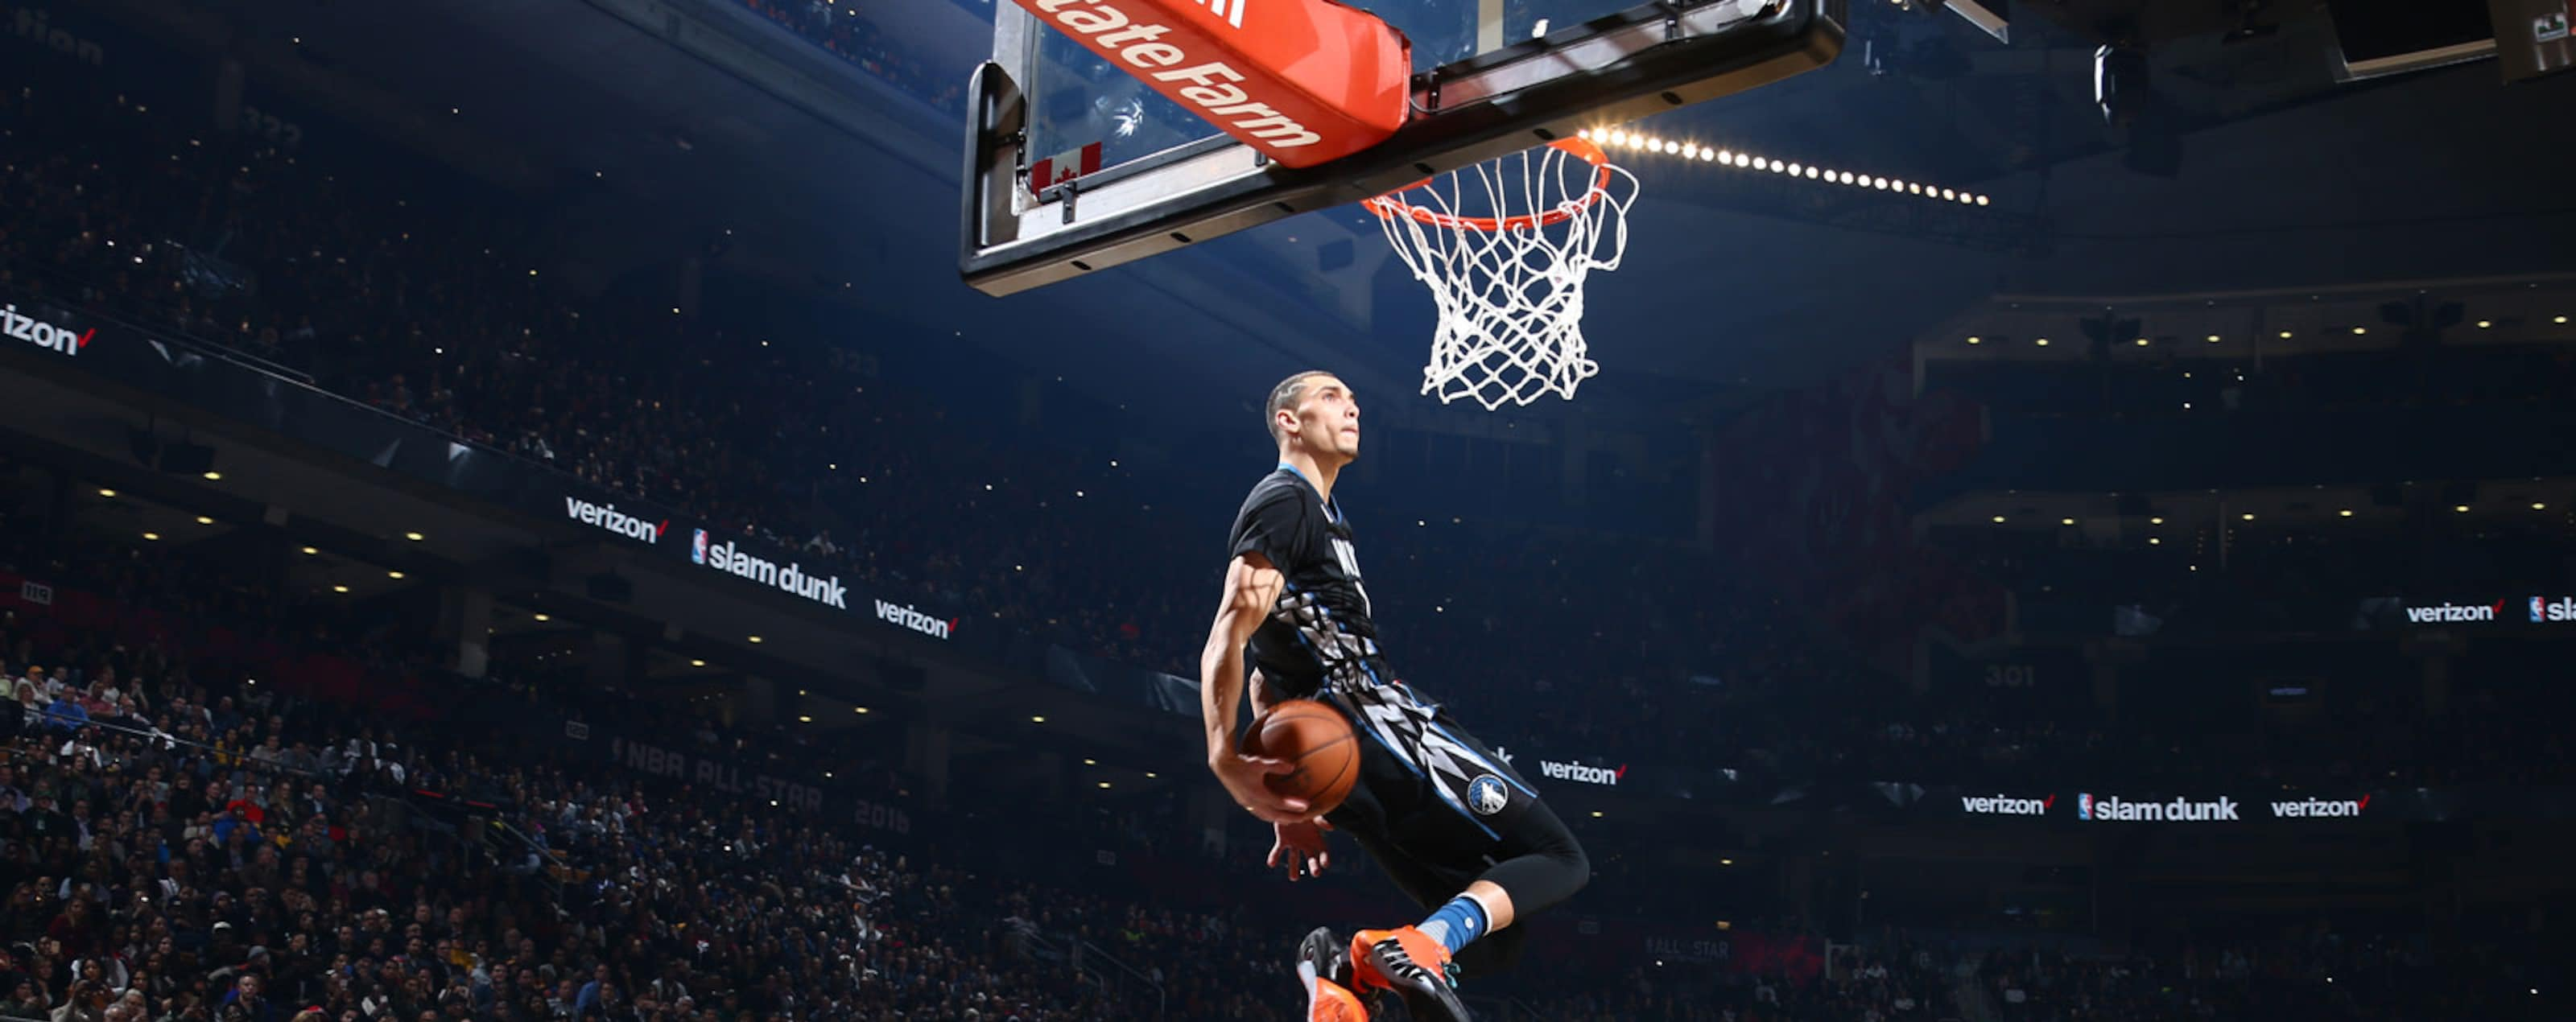 Zach LaVine #8 of the Minnesota Timberwolves dunks the ball during the Verizon Slam Dunk Contest during State Farm All-Star Saturday Night as part of the 2016 NBA All-Star Weekend on February 13, 2016 at Air Canada Centre in Toronto, Ontario, Canada.